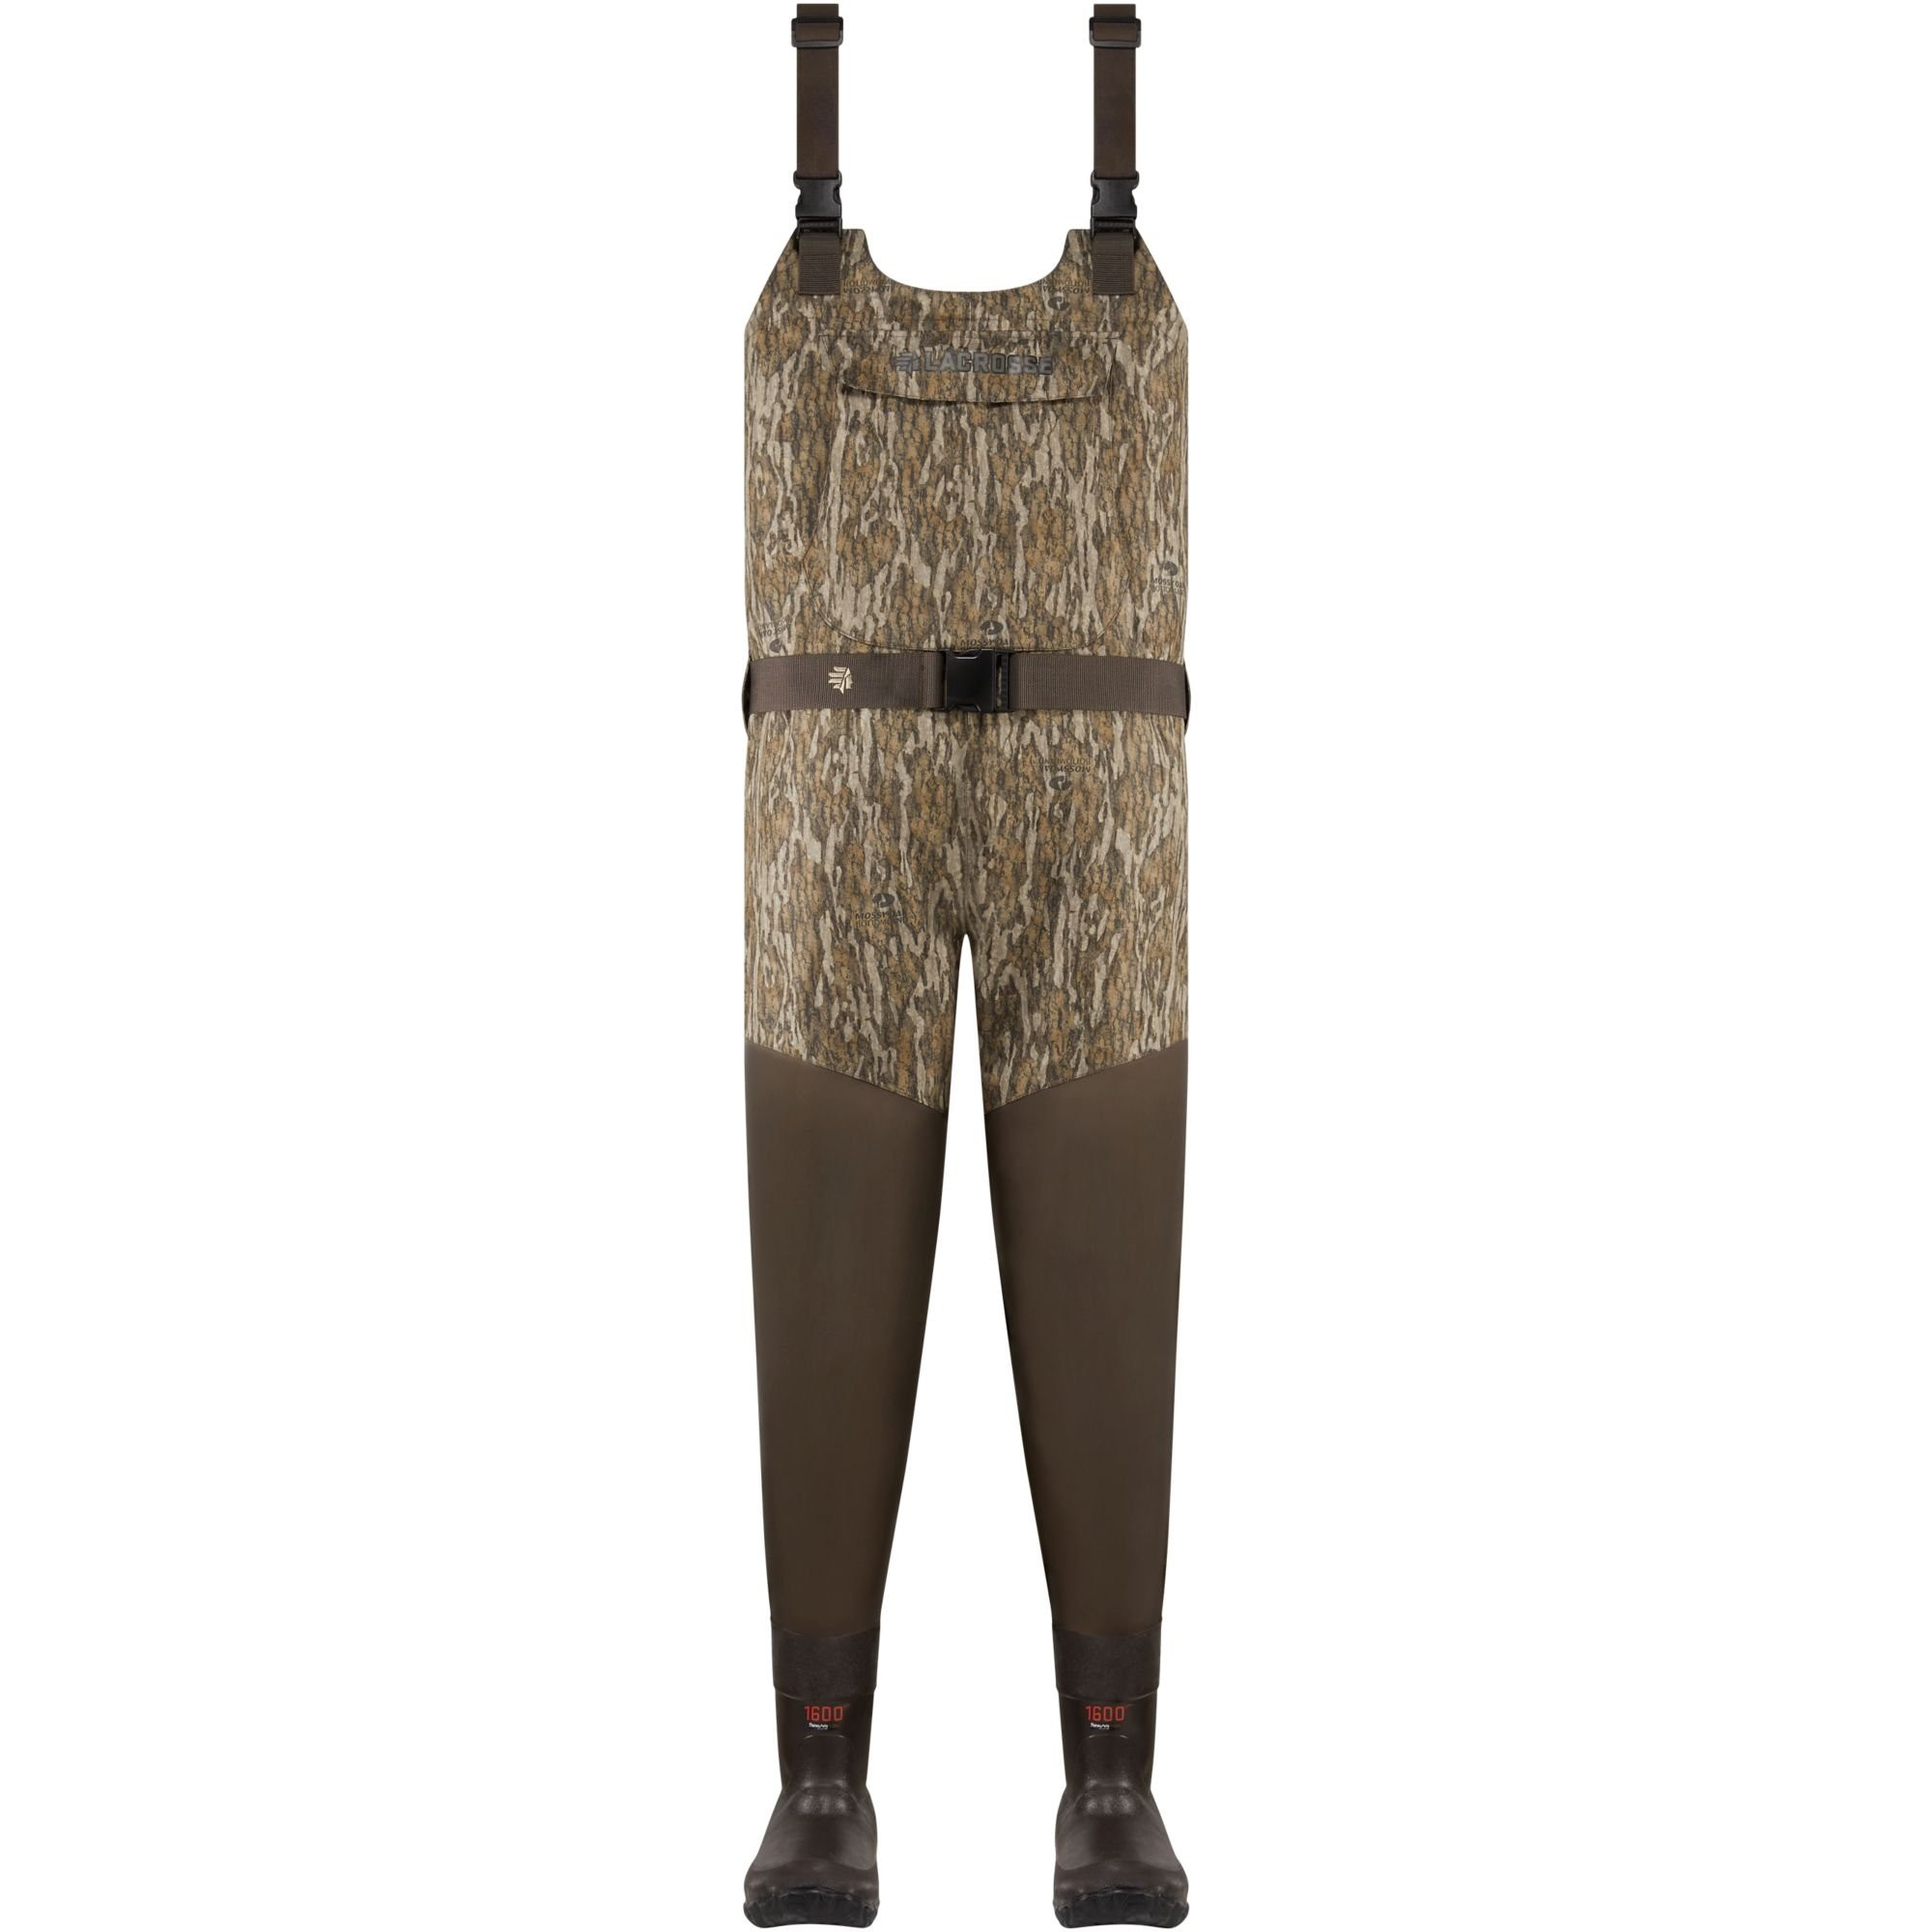 a1c154319a923 LaCrosse Wetlands Insulated Waders - Mossy Oak Bottomland 1600G | Natchez